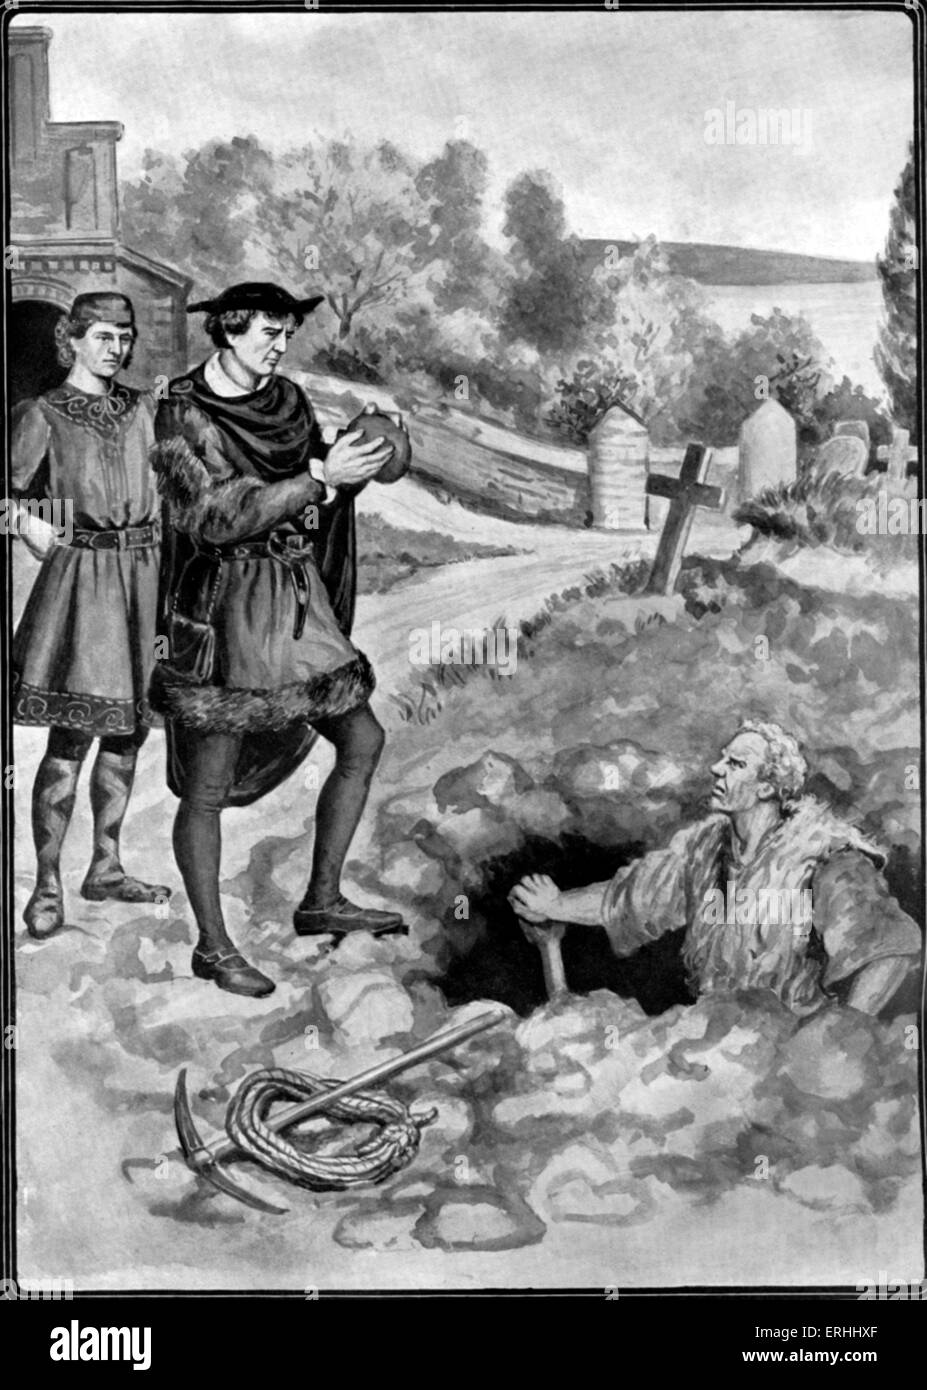 William Shakespeare 's play 'Hamlet' - Act V, scene 1: Hamlet and Horatio by the grave being dug for - Stock Image